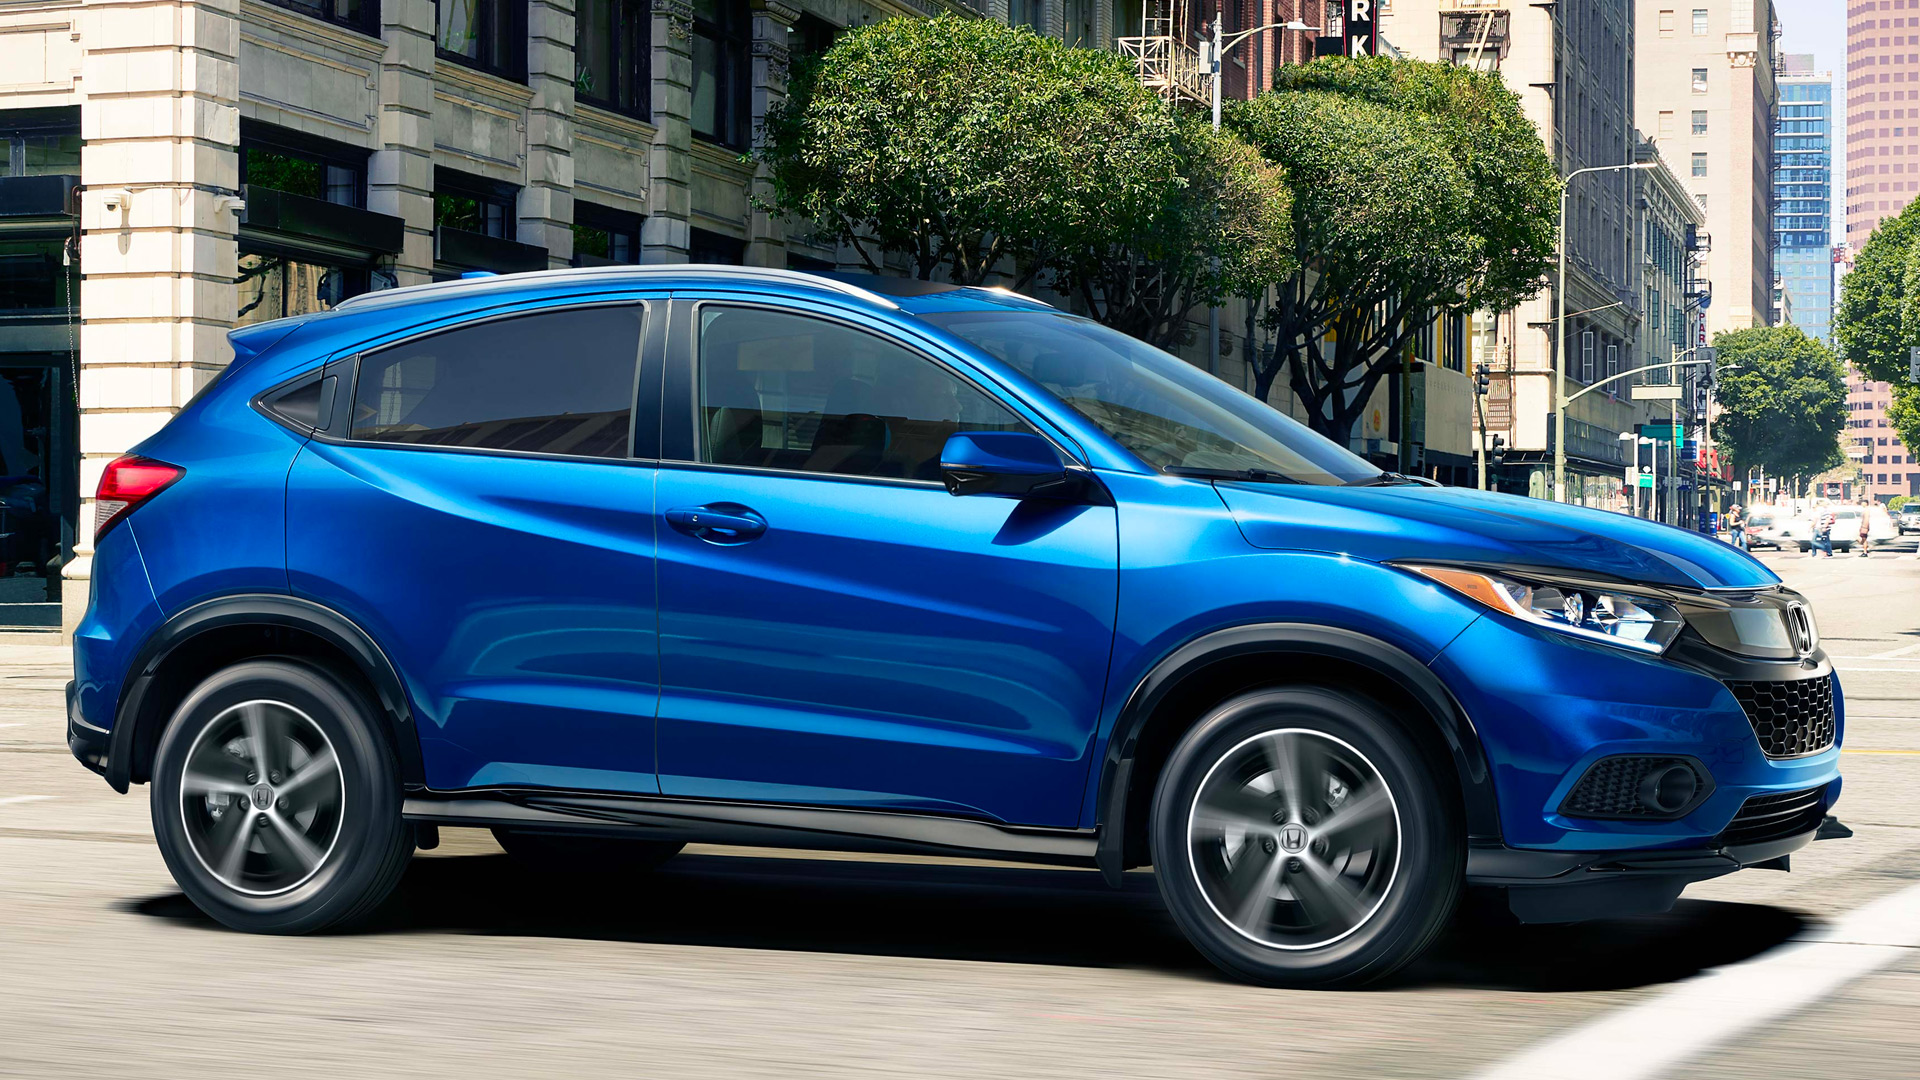 2020 Hrv Blue On Street